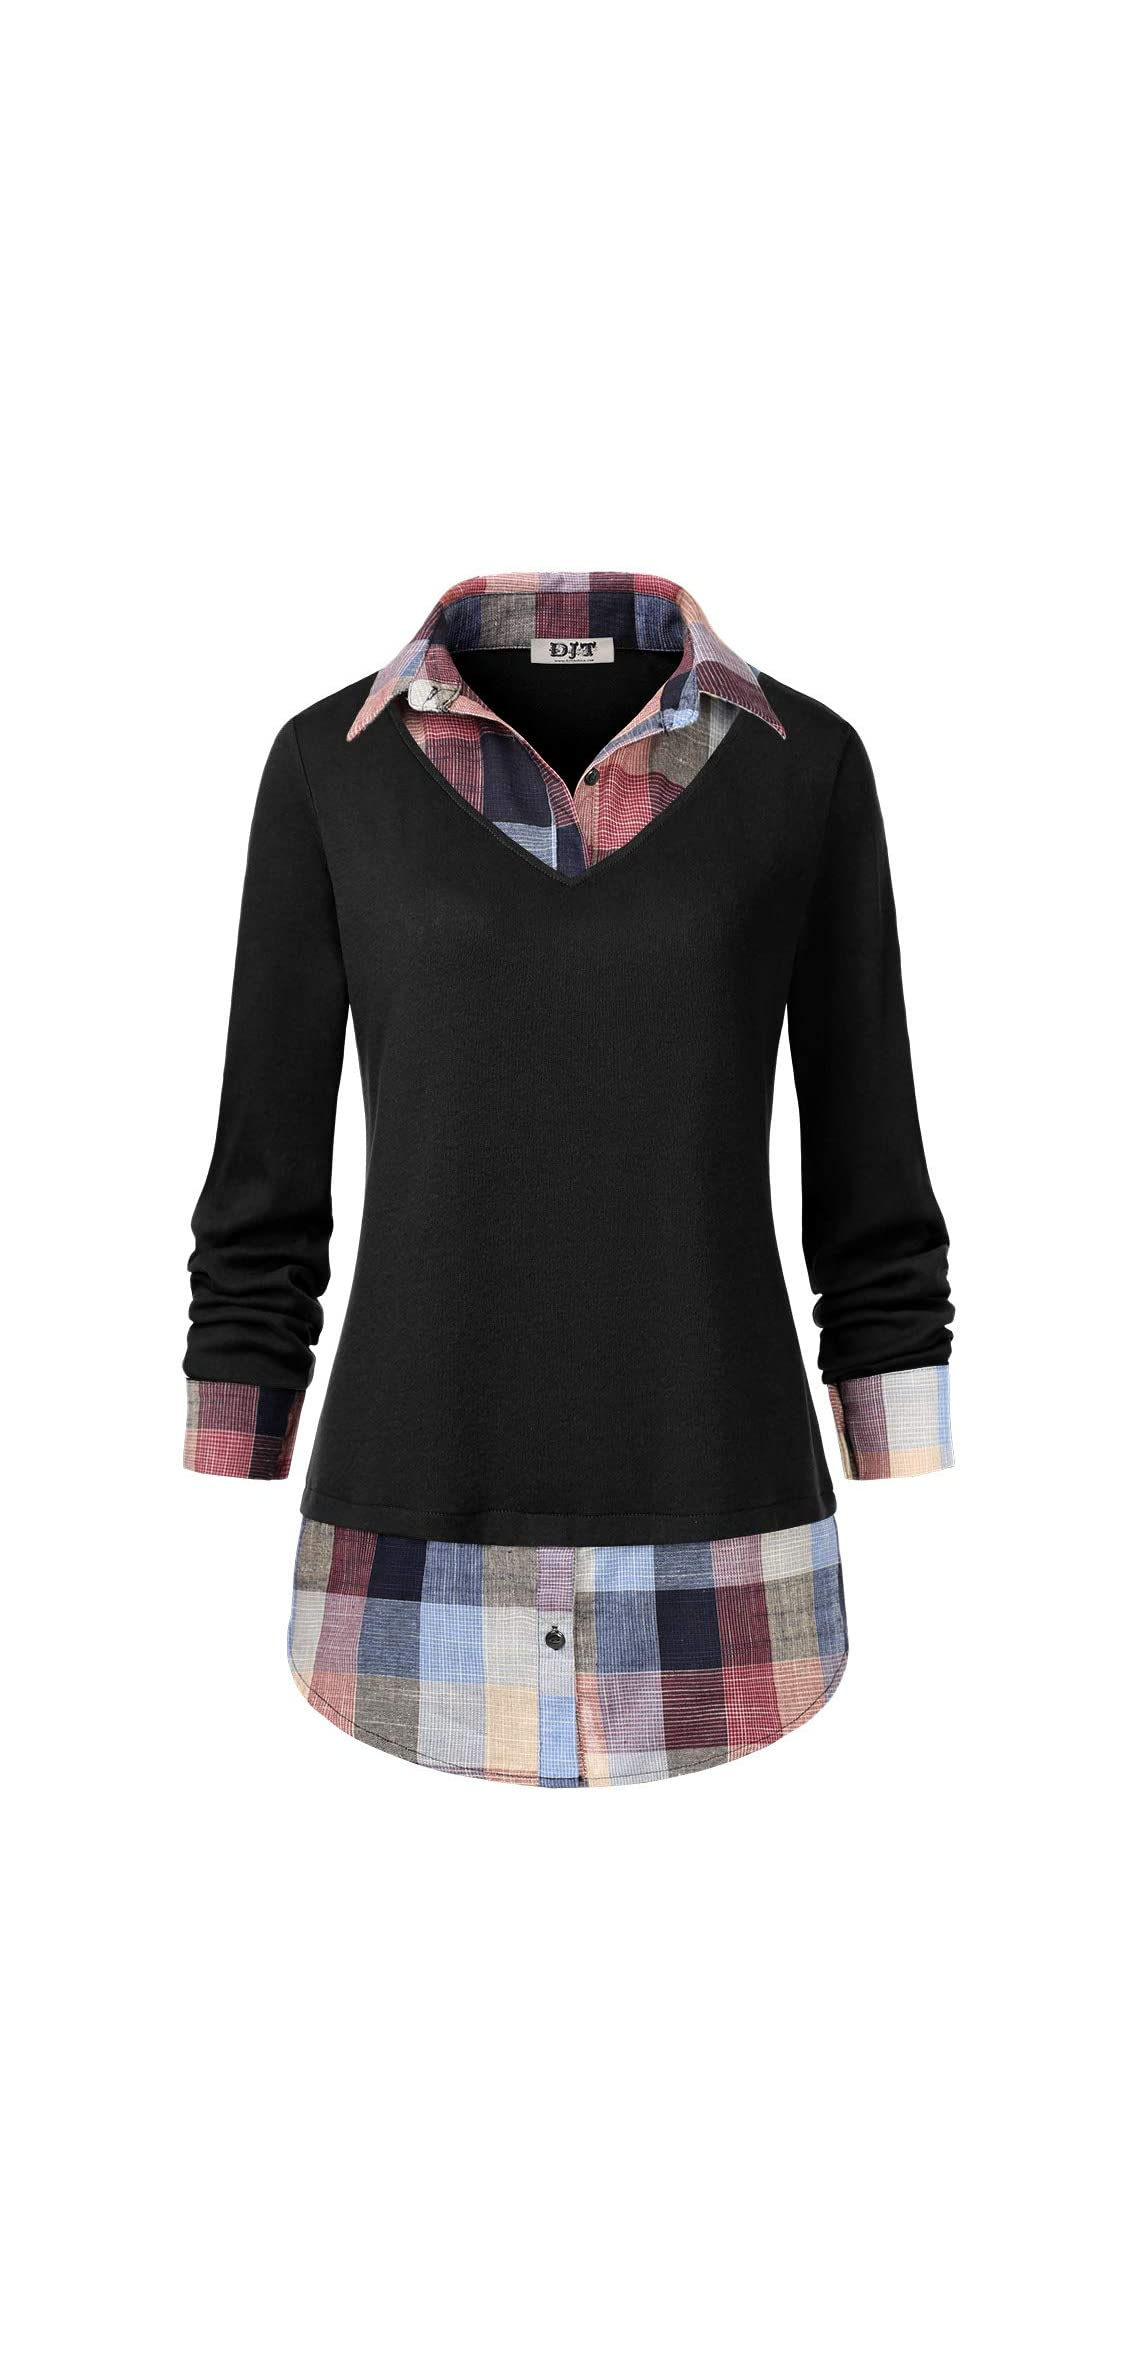 Djt Women's Contrast Plaid Collar  In  Blouse Tunic Tops